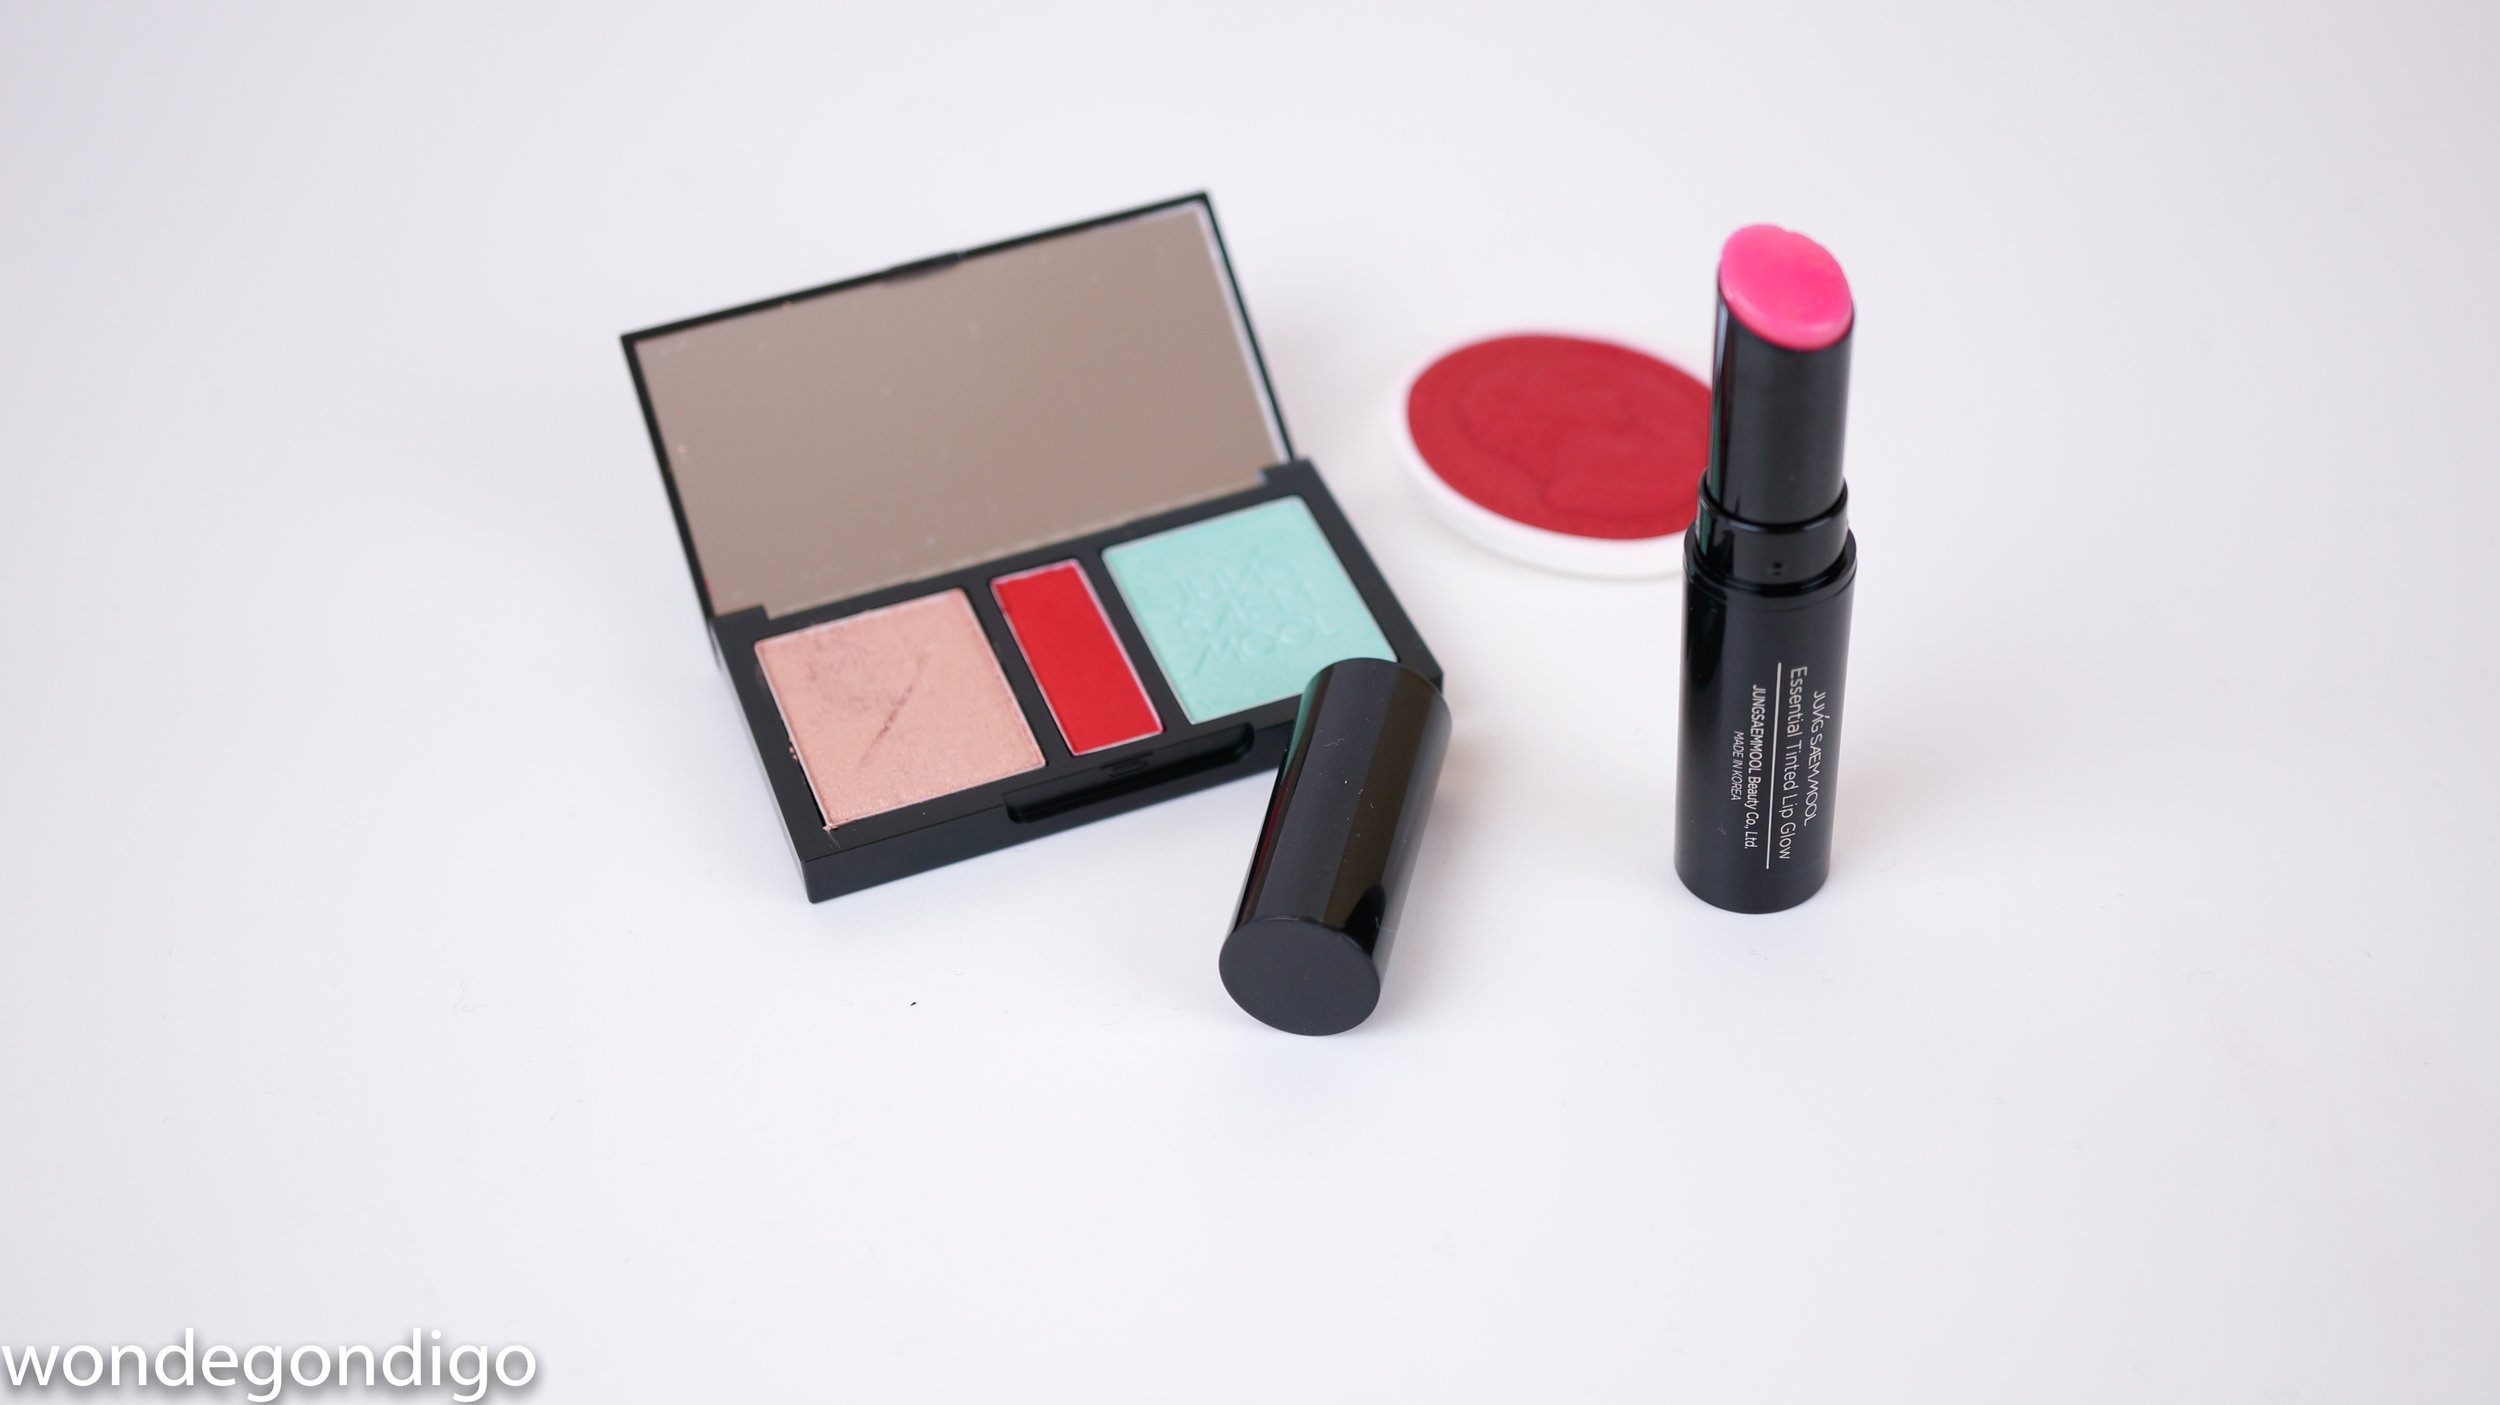 I'm wearing the Essential Tinted Lip Glow (a tinted balm) in Pink Glow, and a discontinued Laduree Blush.